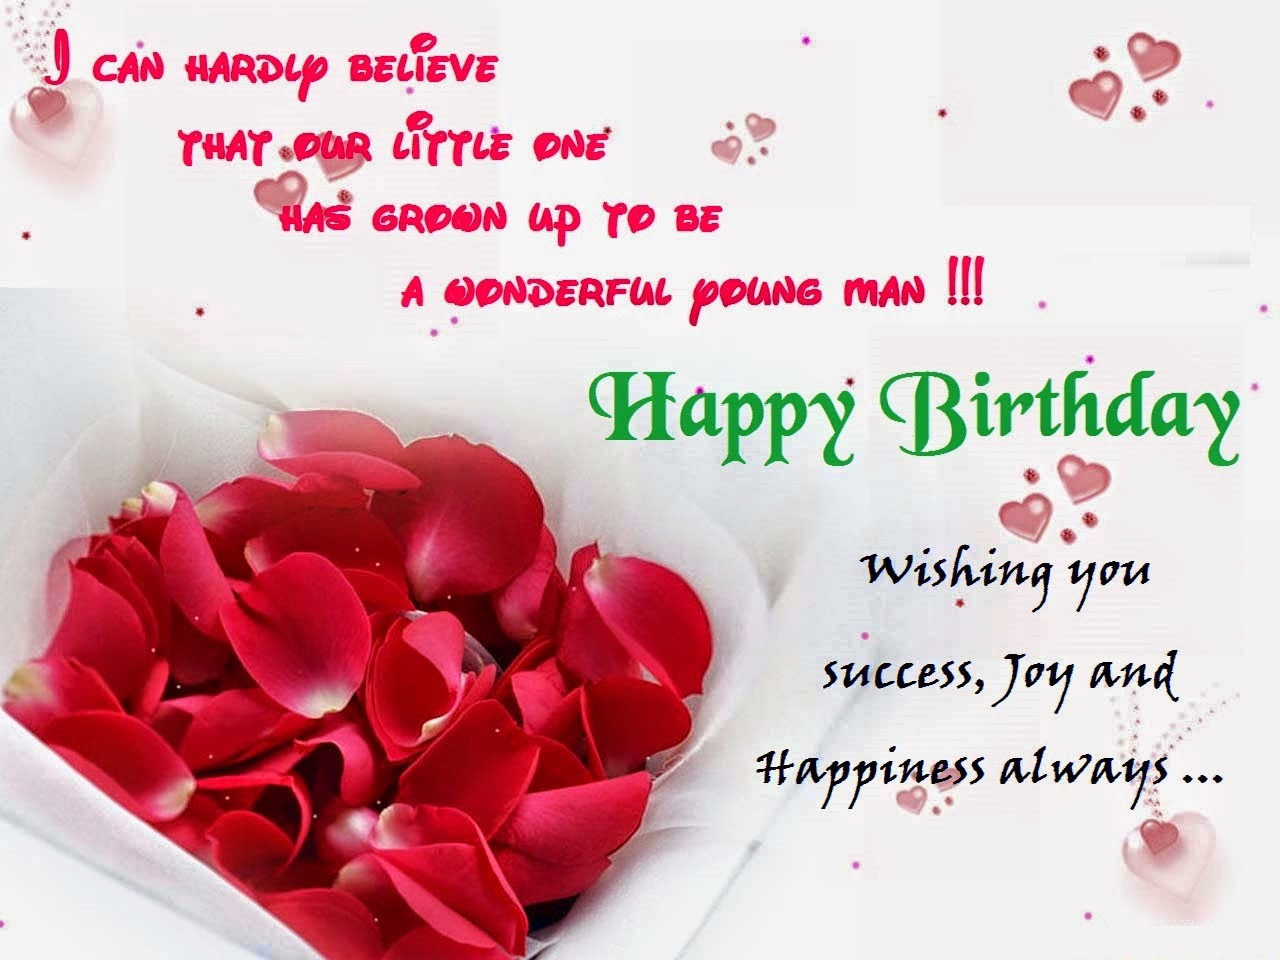 Happy Birthday Wishes Saying Quotes For Someone Or Special Friend